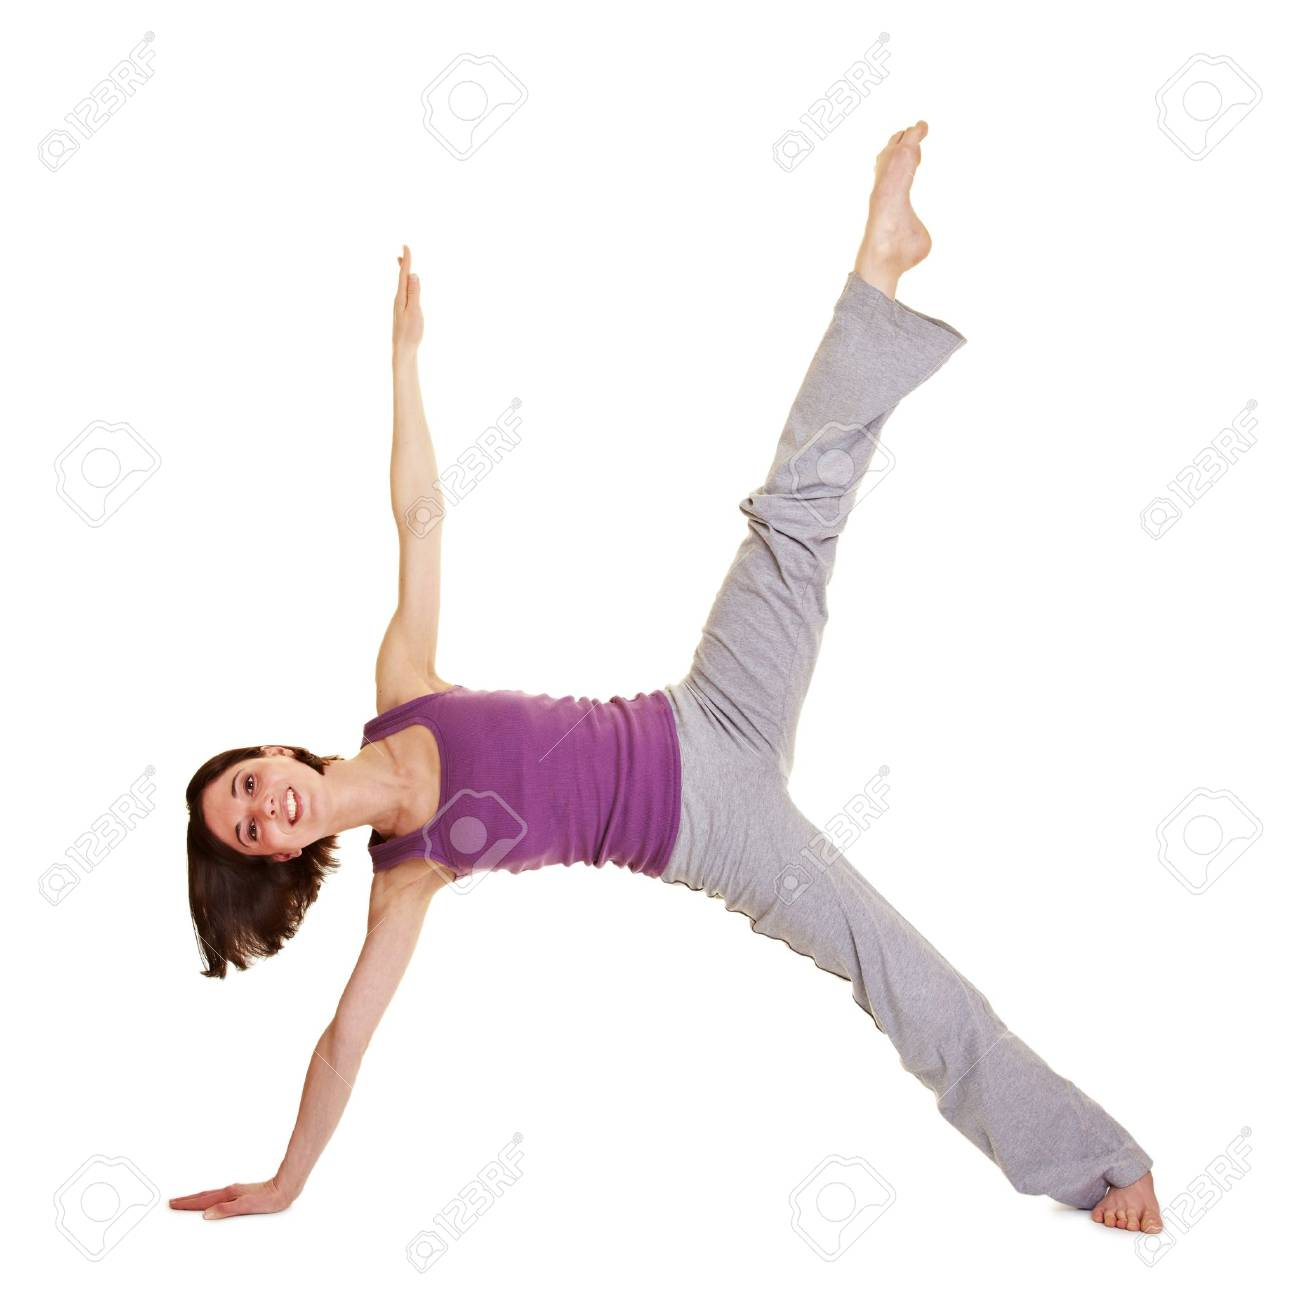 Young smiling flexible woman stretching her legs Stock Photo - 9515506